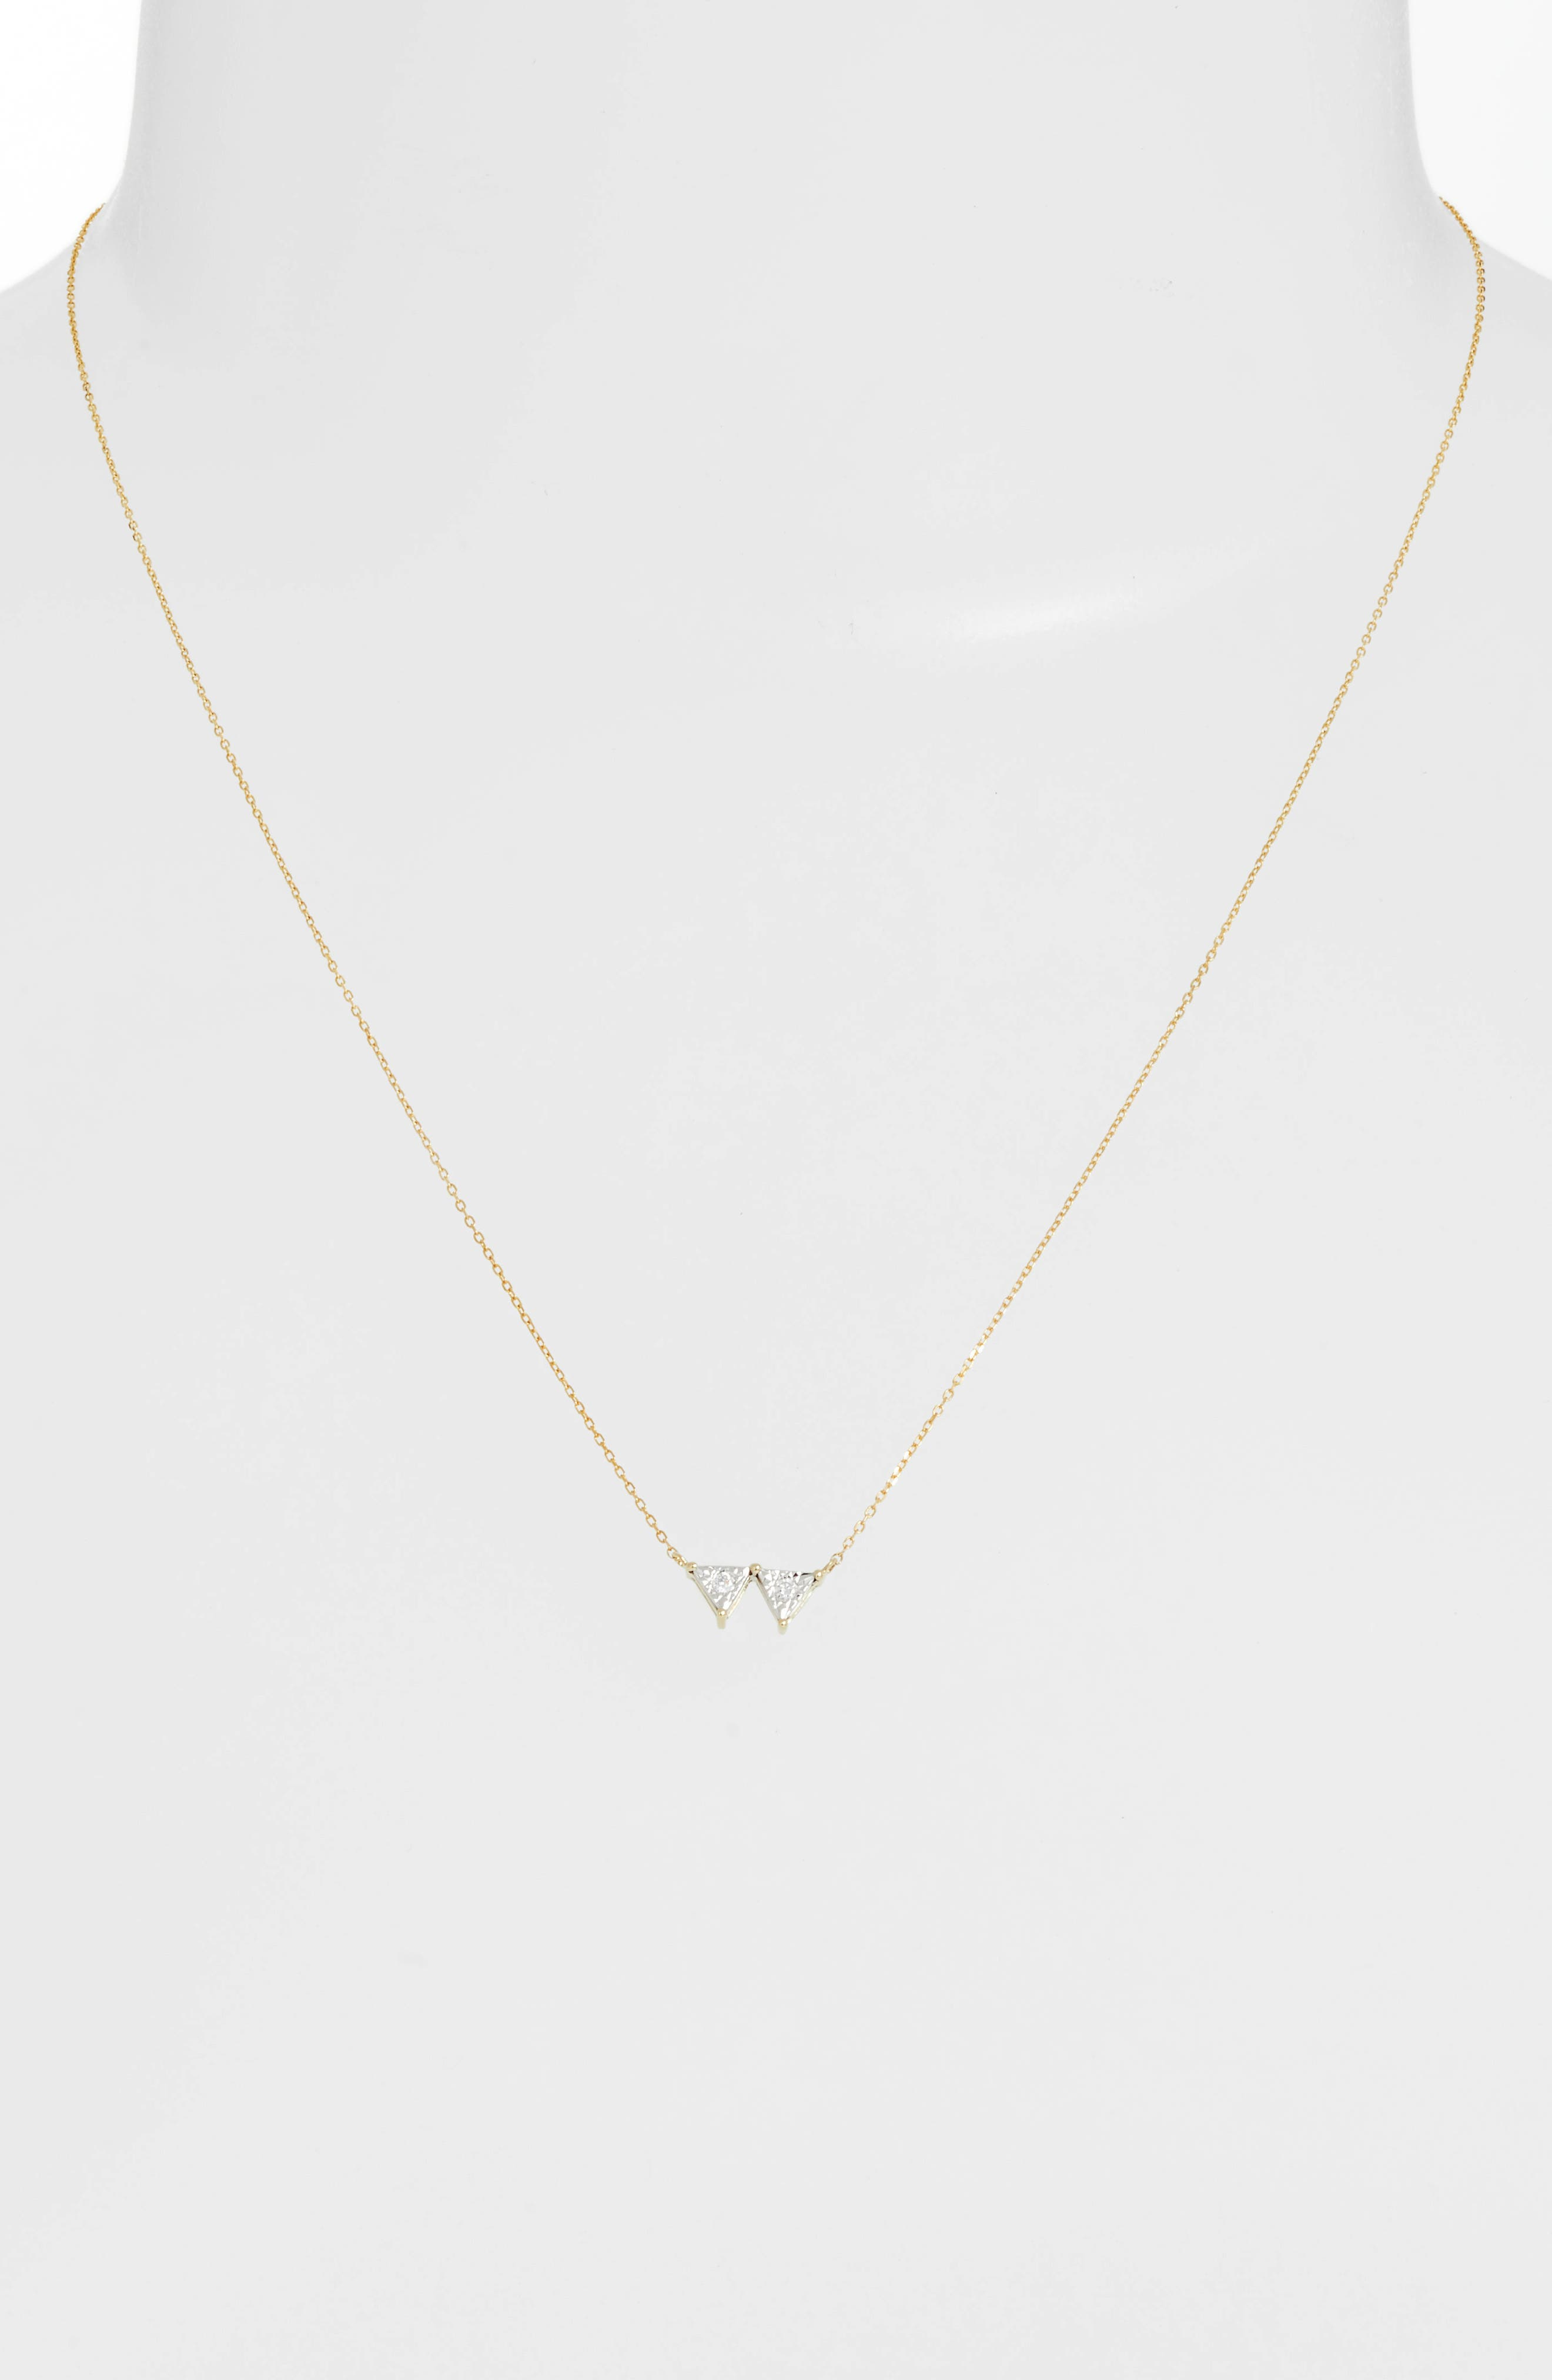 Emily Sarah Double Triangle Diamond Necklace,                             Alternate thumbnail 2, color,                             YELLOW GOLD